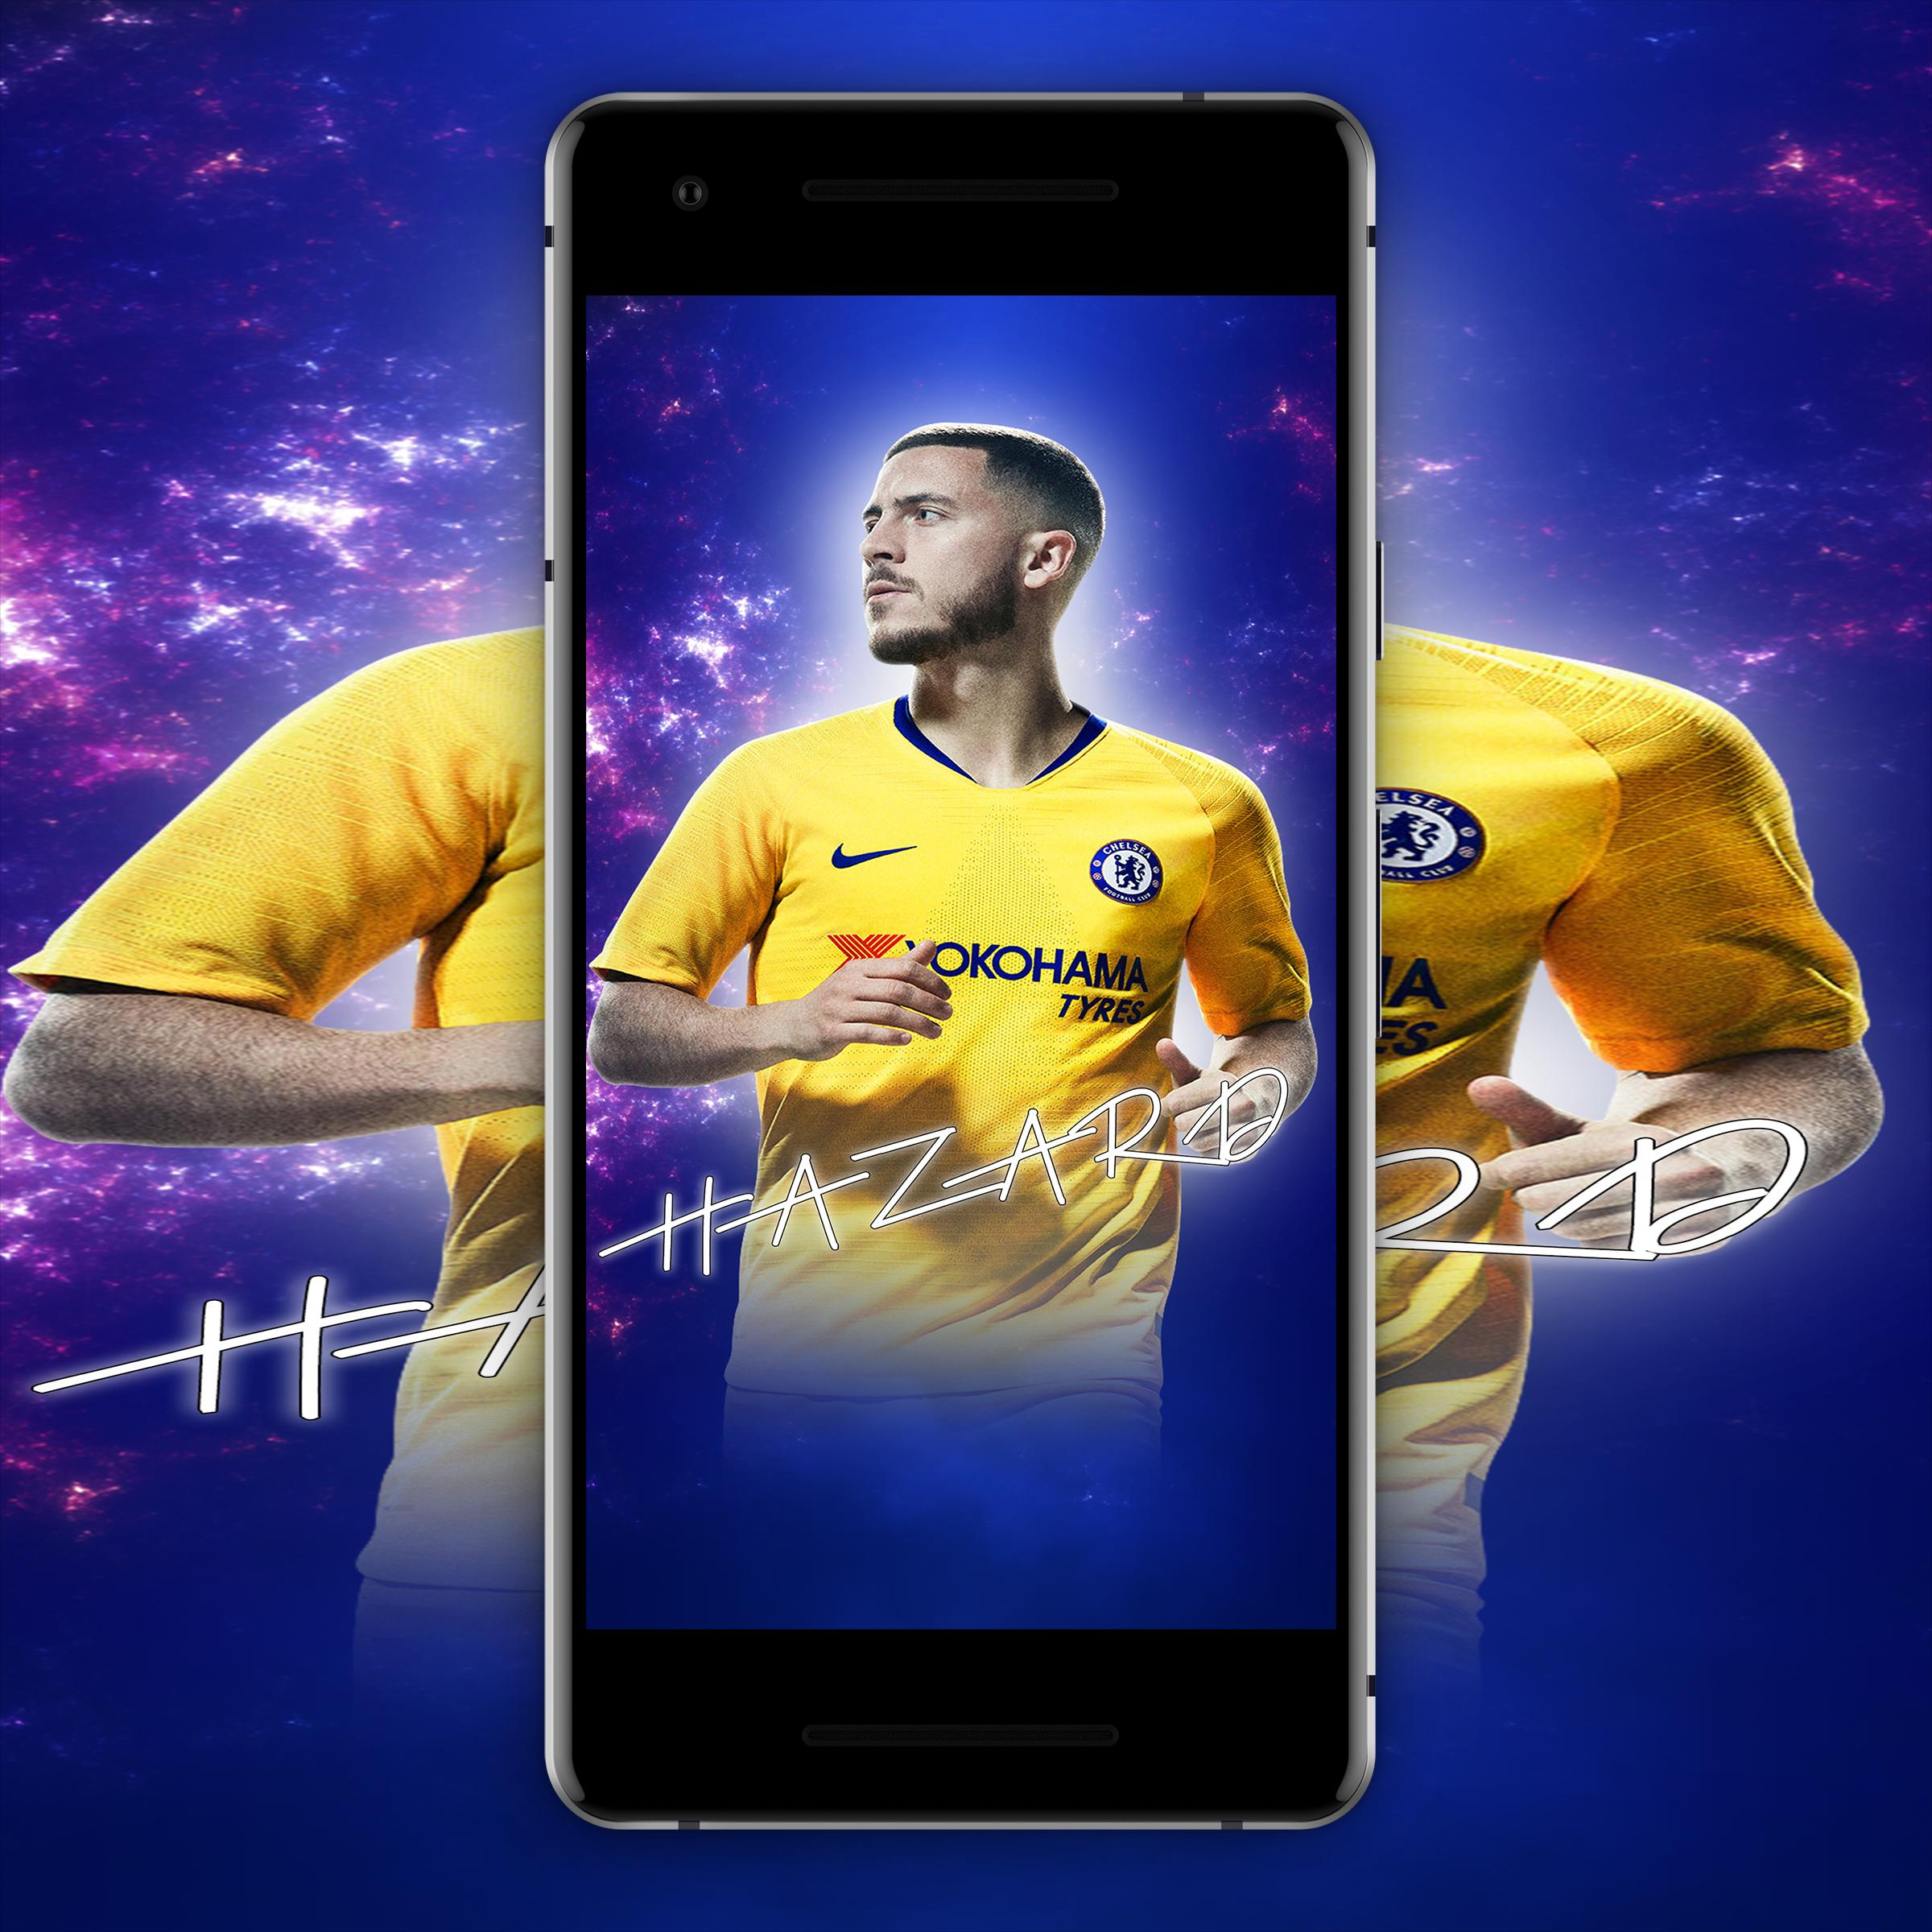 Eden Hazard Wallpaper Hd For Android Apk Download